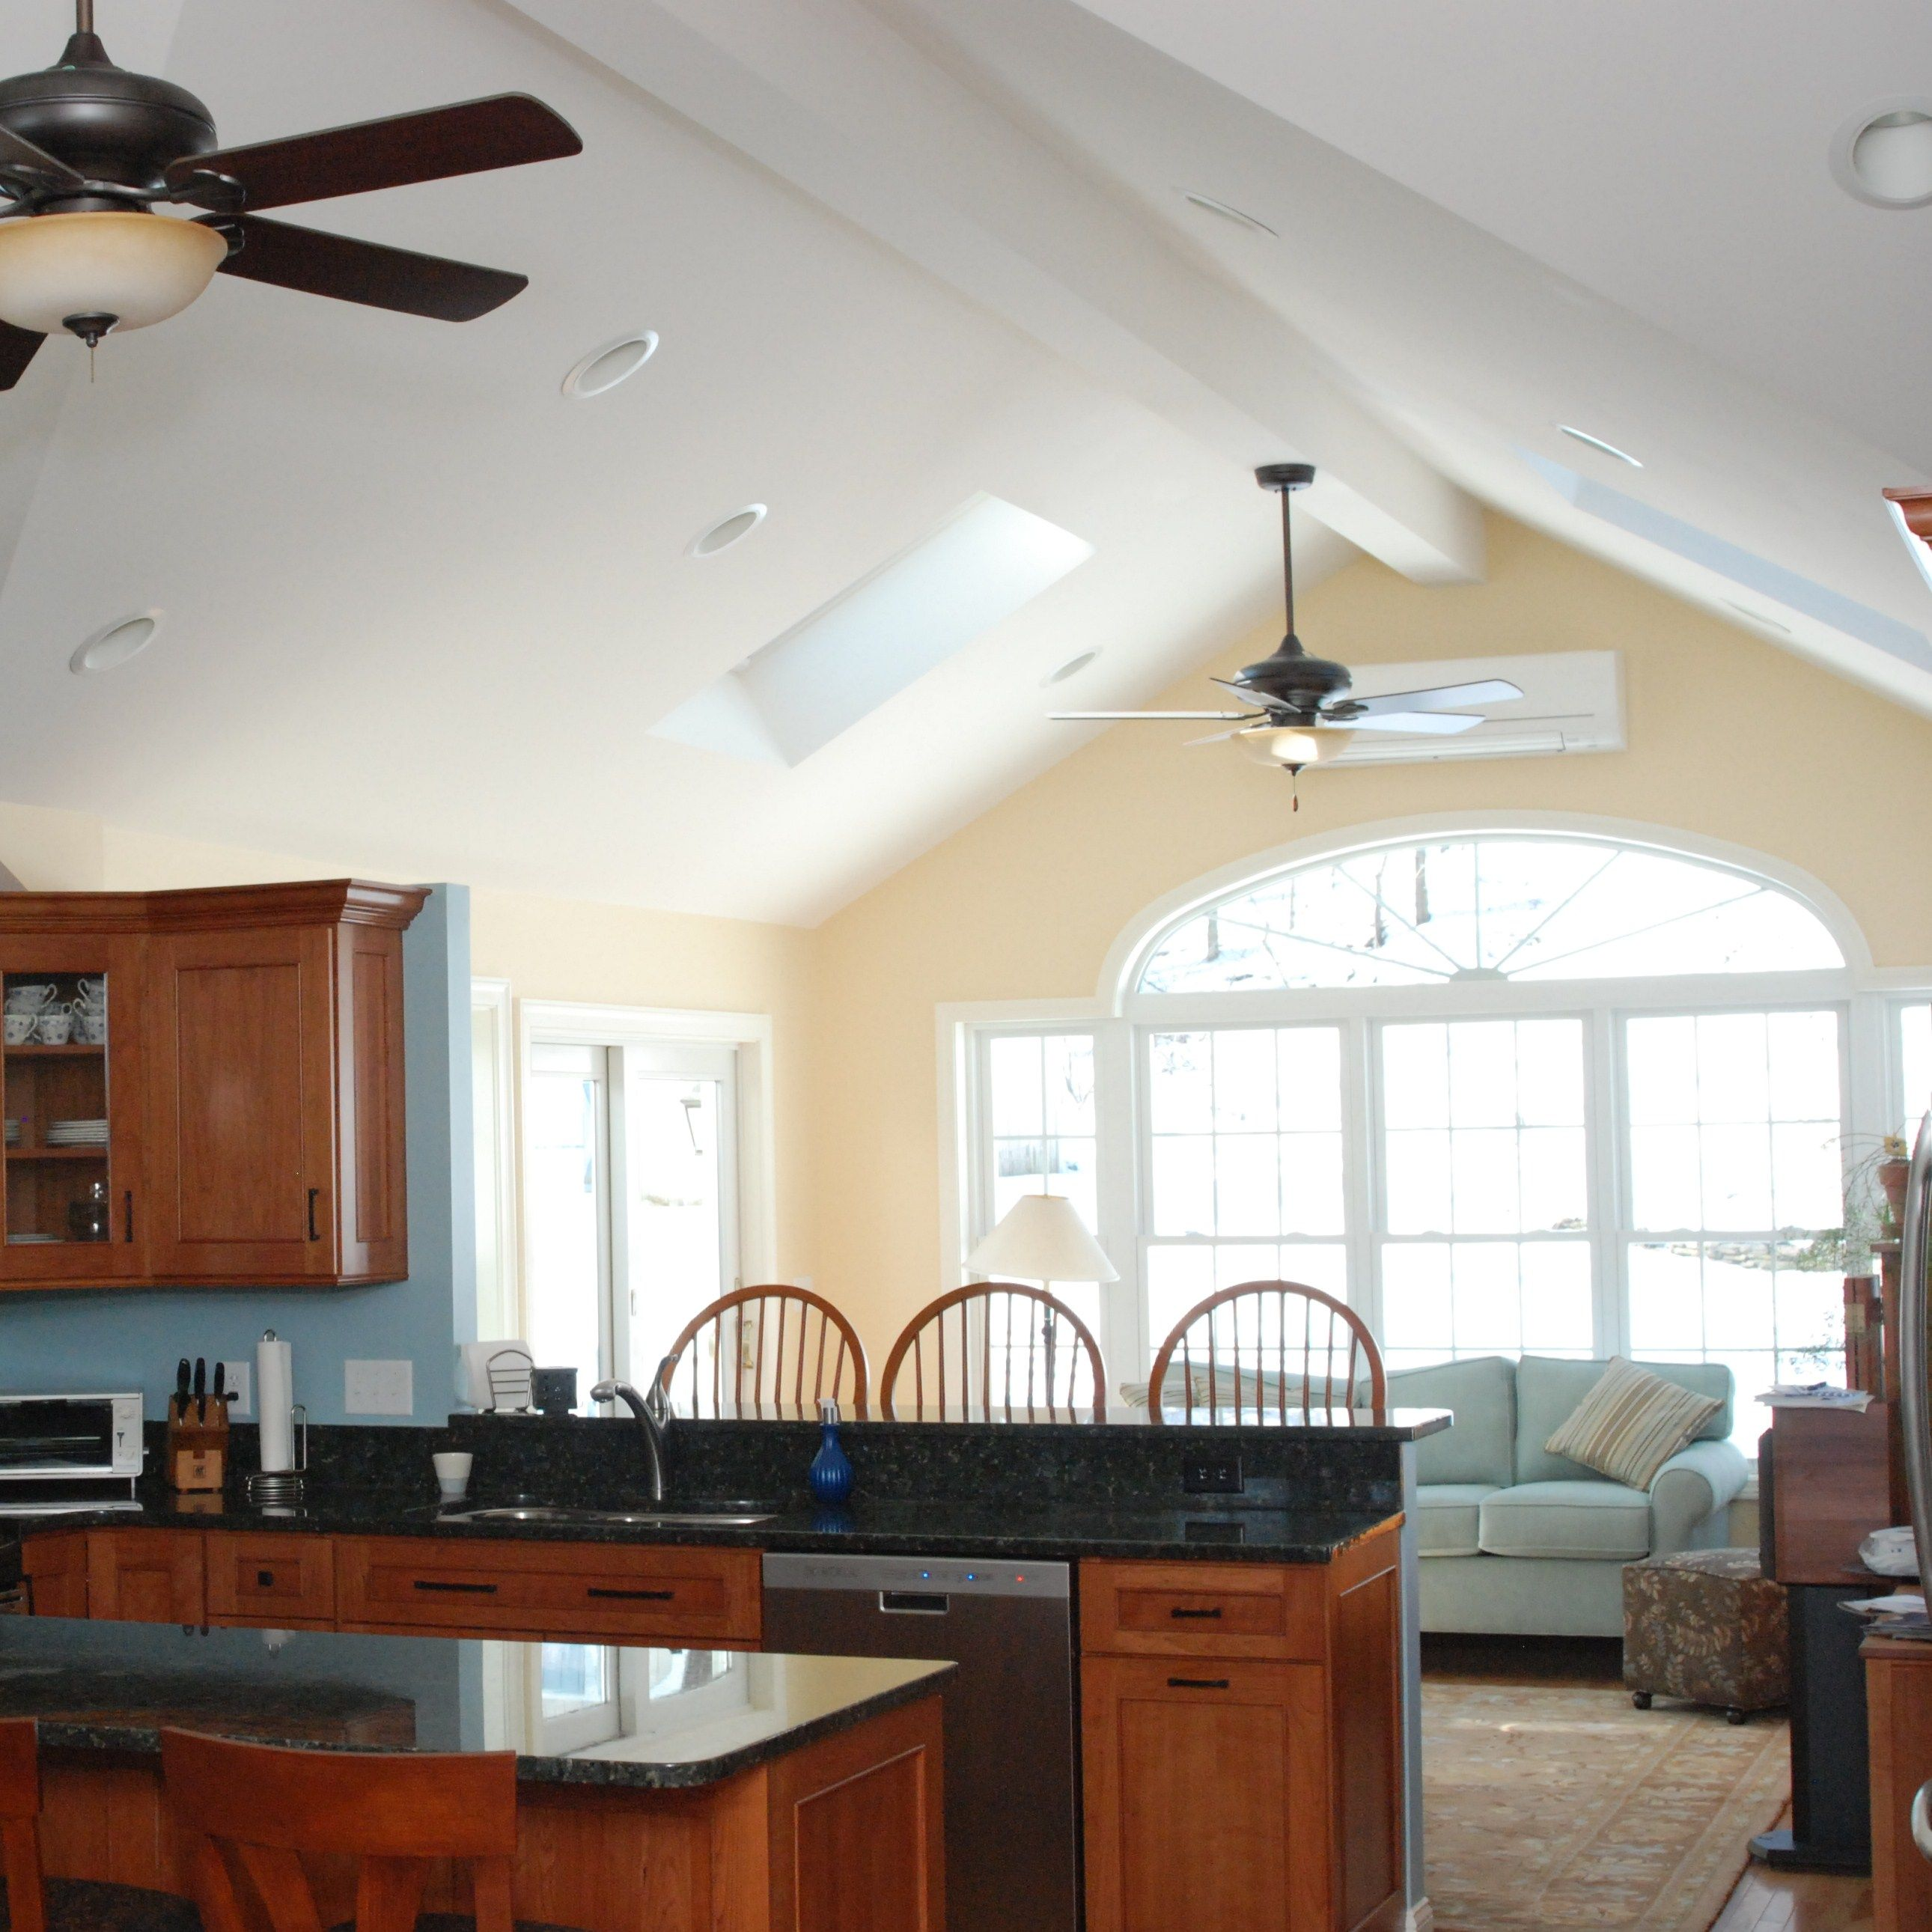 Family Room Additions: New Family Room Addition, And Remodeled Kitchen. See The